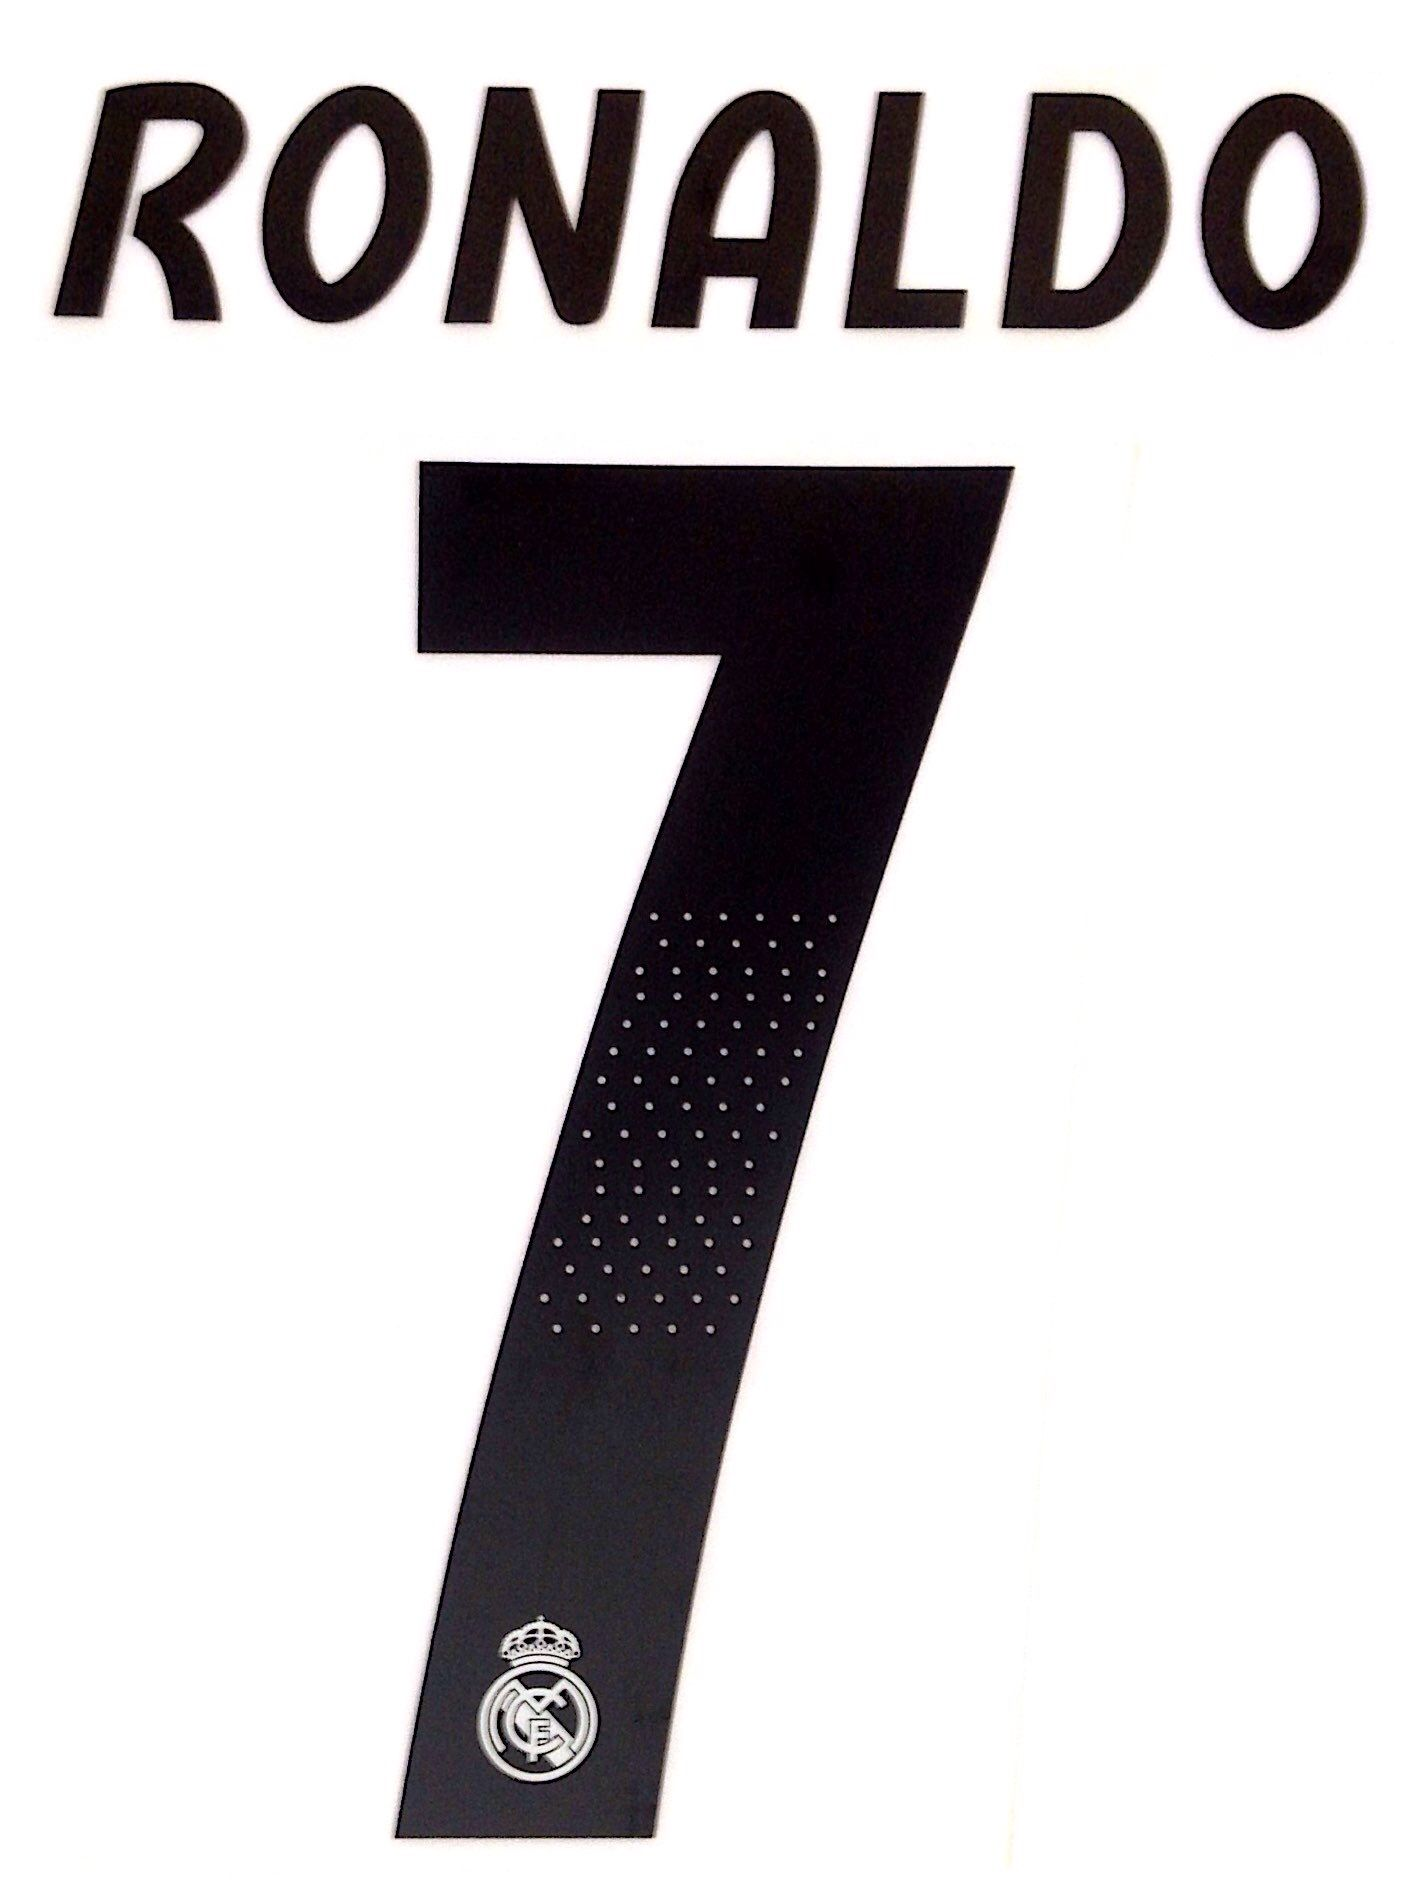 KIDS 2018-19 Real Madrid HERO SET Home Shirt RONALD0 7 Official SportingiD  Name Number Set 6e83fc192